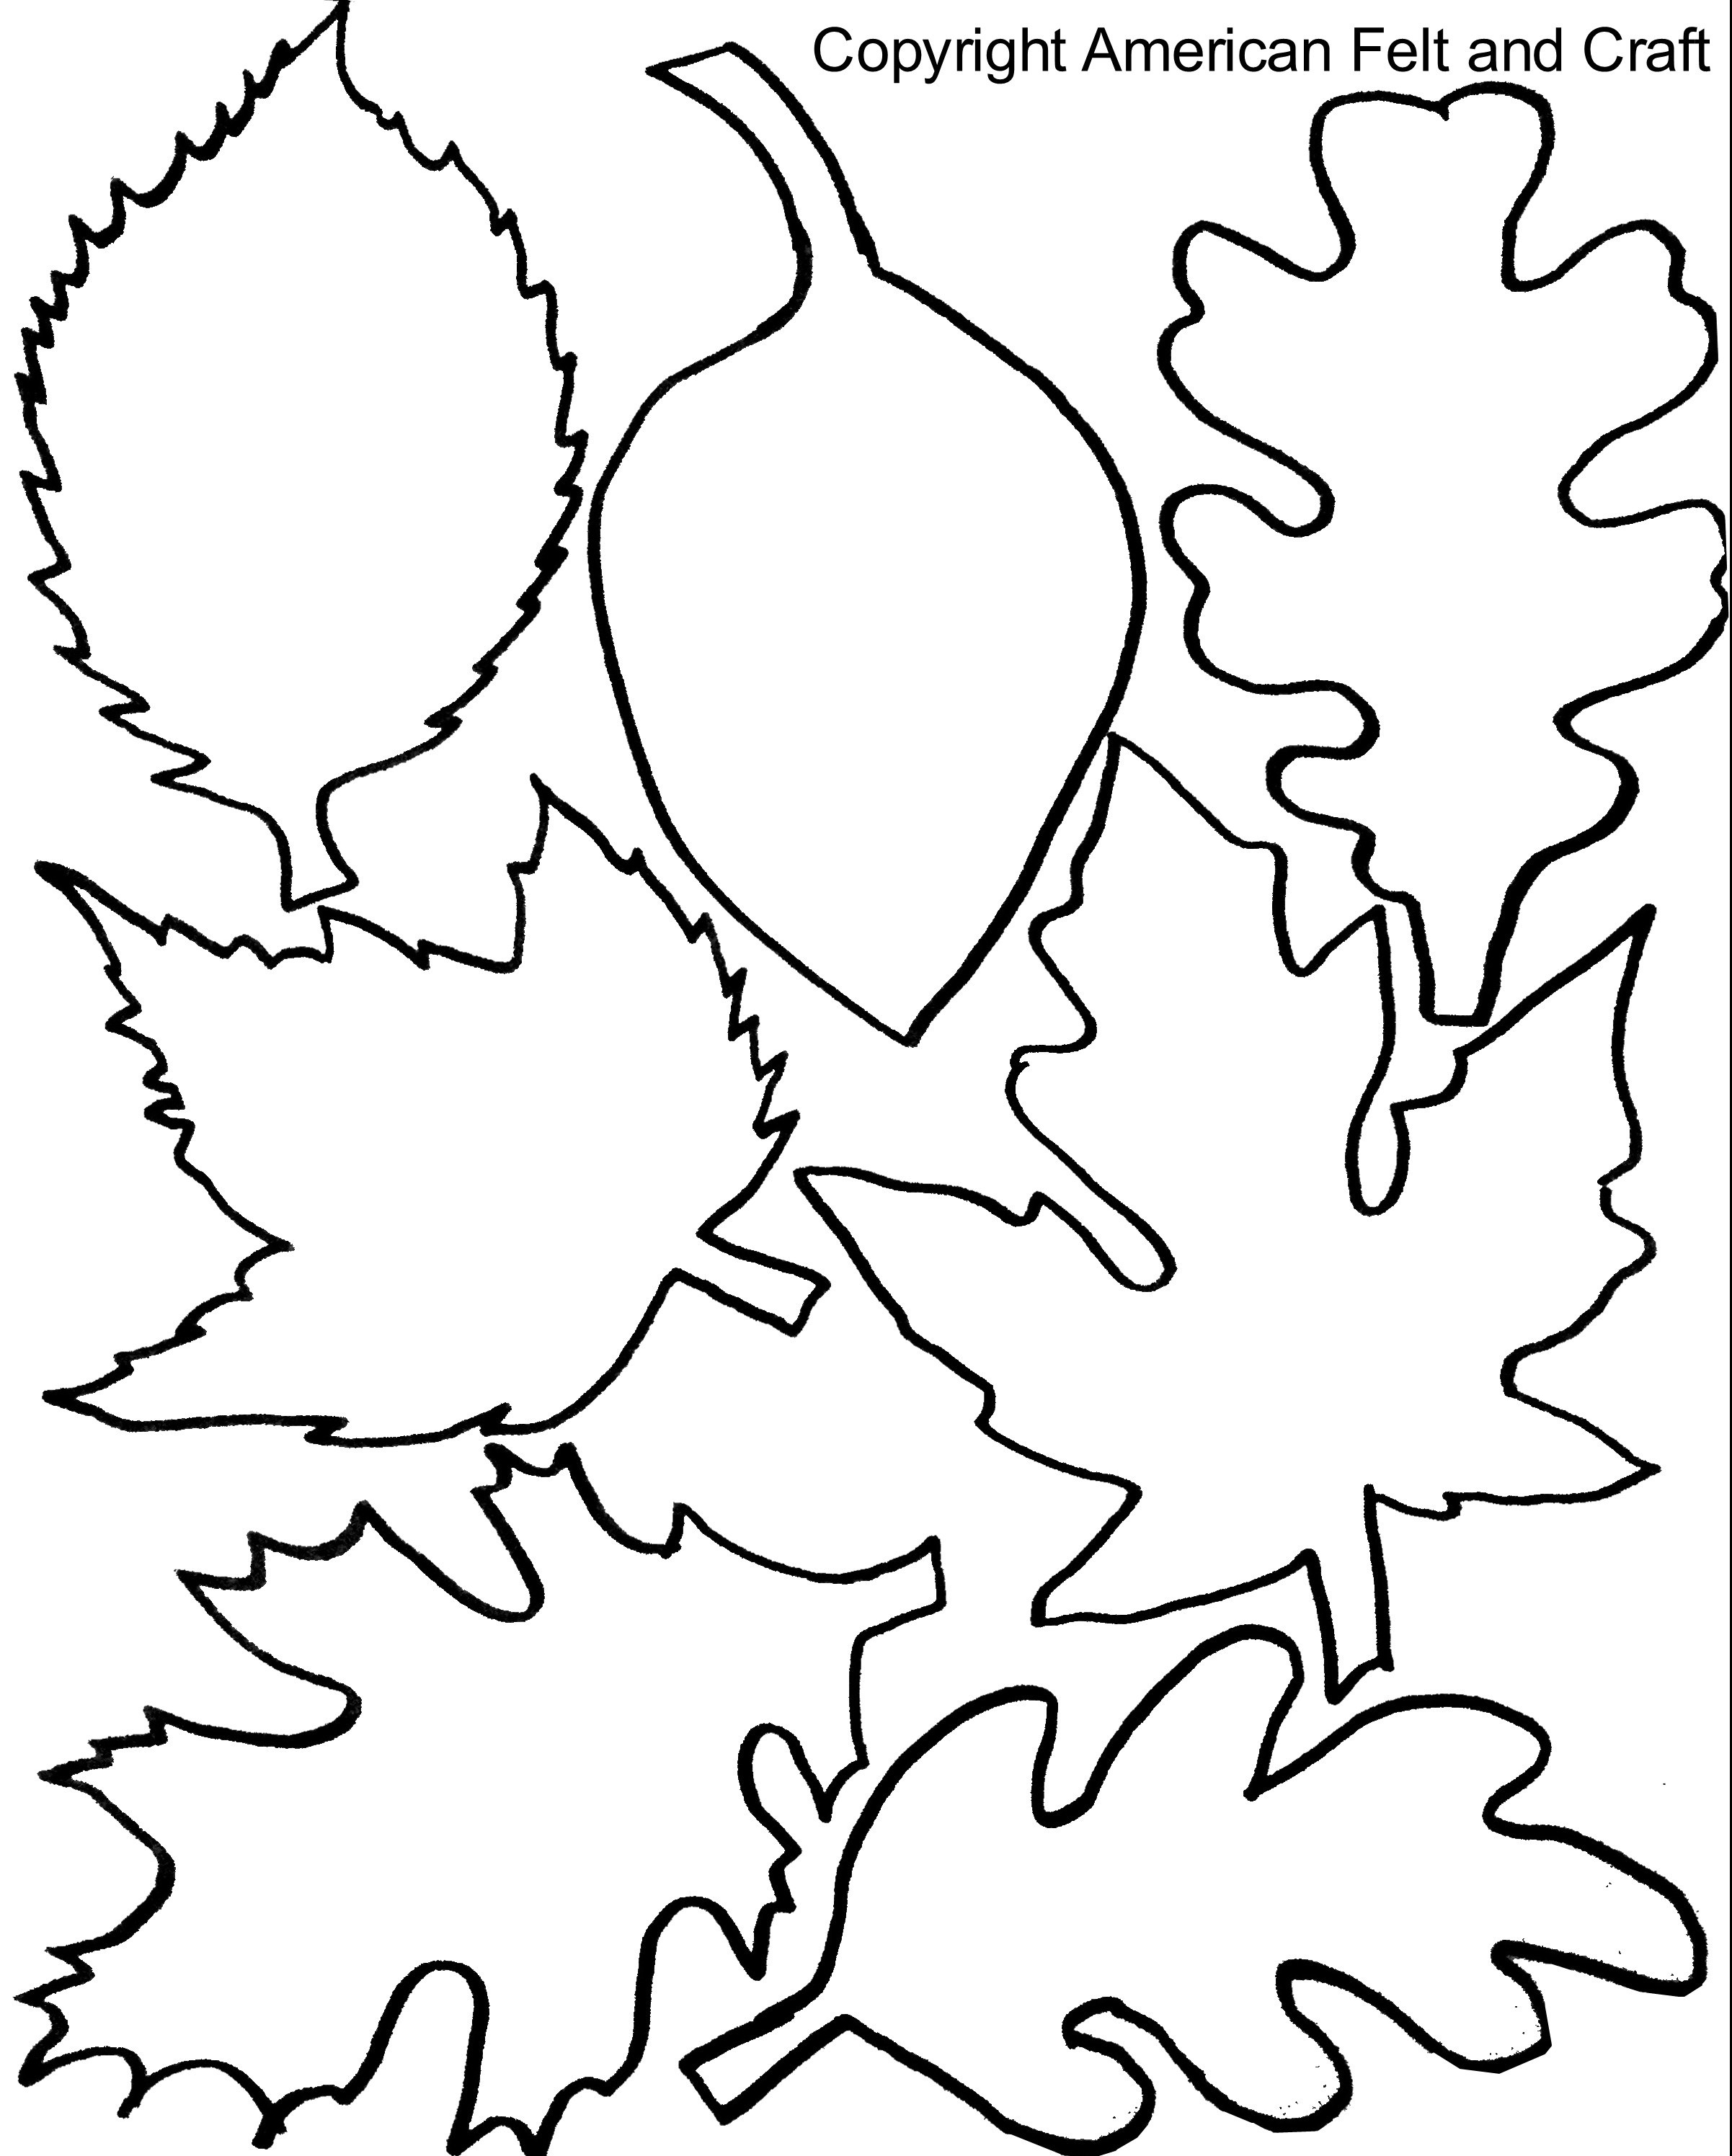 fall leaves print out printable fall leaves patterns and learning activities o fall out print leaves